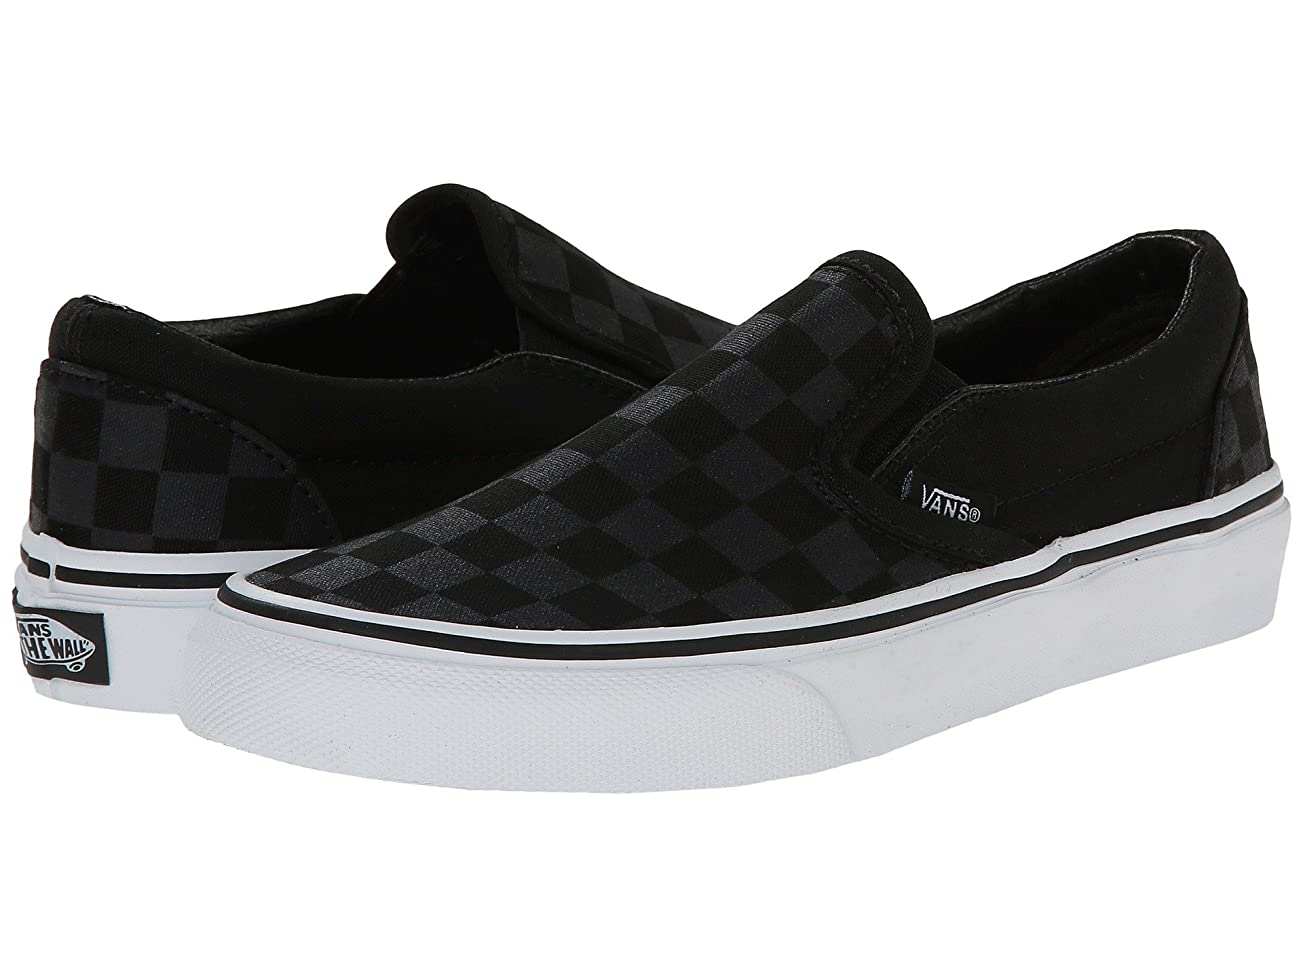 富豪遠征後者(バンズ) VANS メンズスニーカー?靴 Classic Slip-On Core Classics (Checkerboard) Black/Black Men's 11.5, Women's 13 (29.5cm(レディース30cm)) Medium